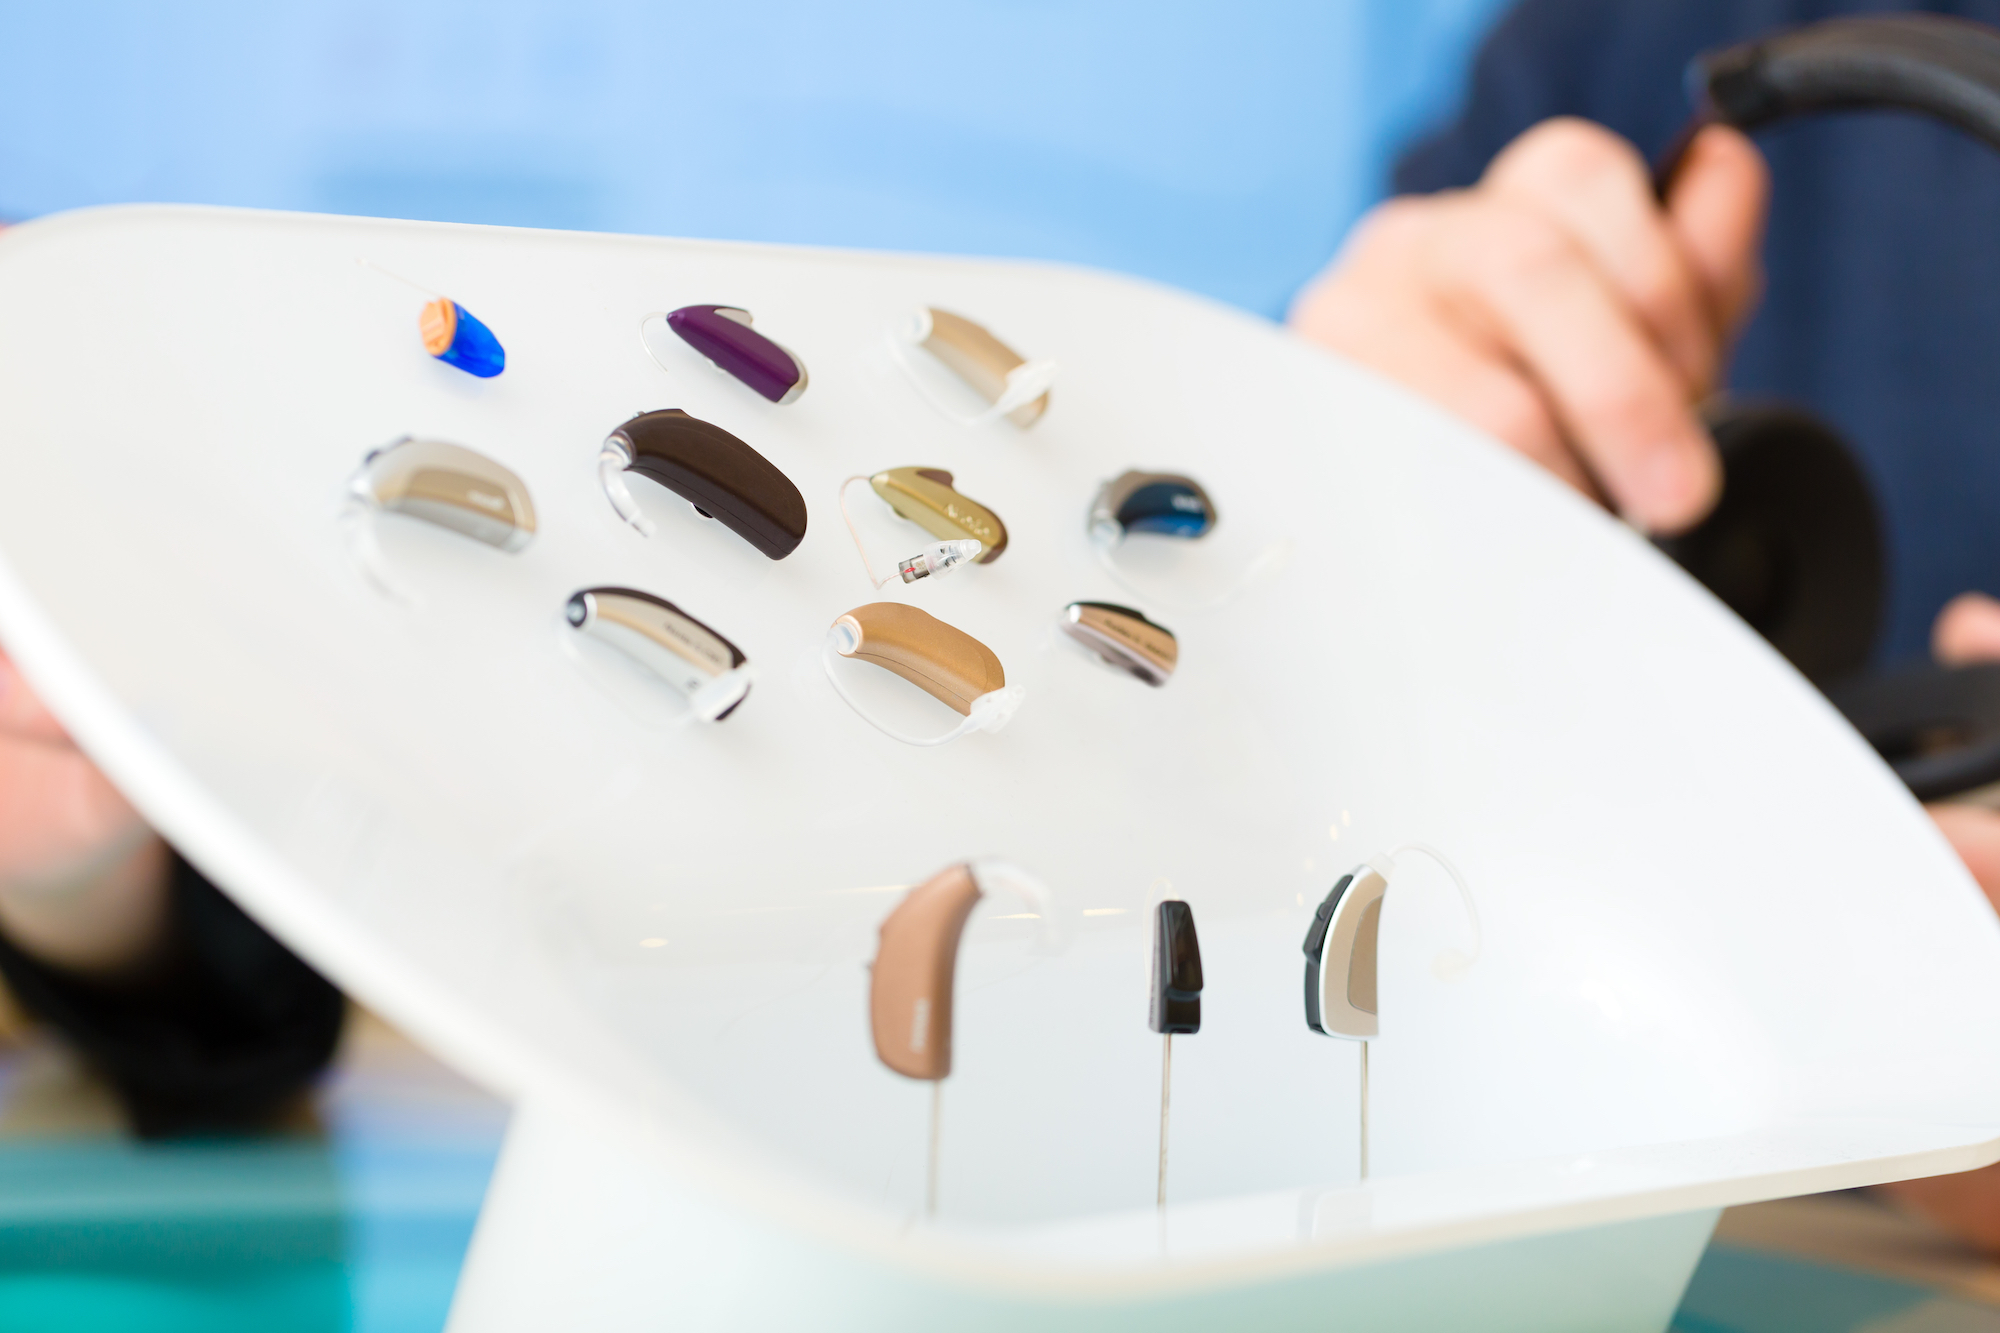 selection of hearing aids in colors and sizes mounted on white board